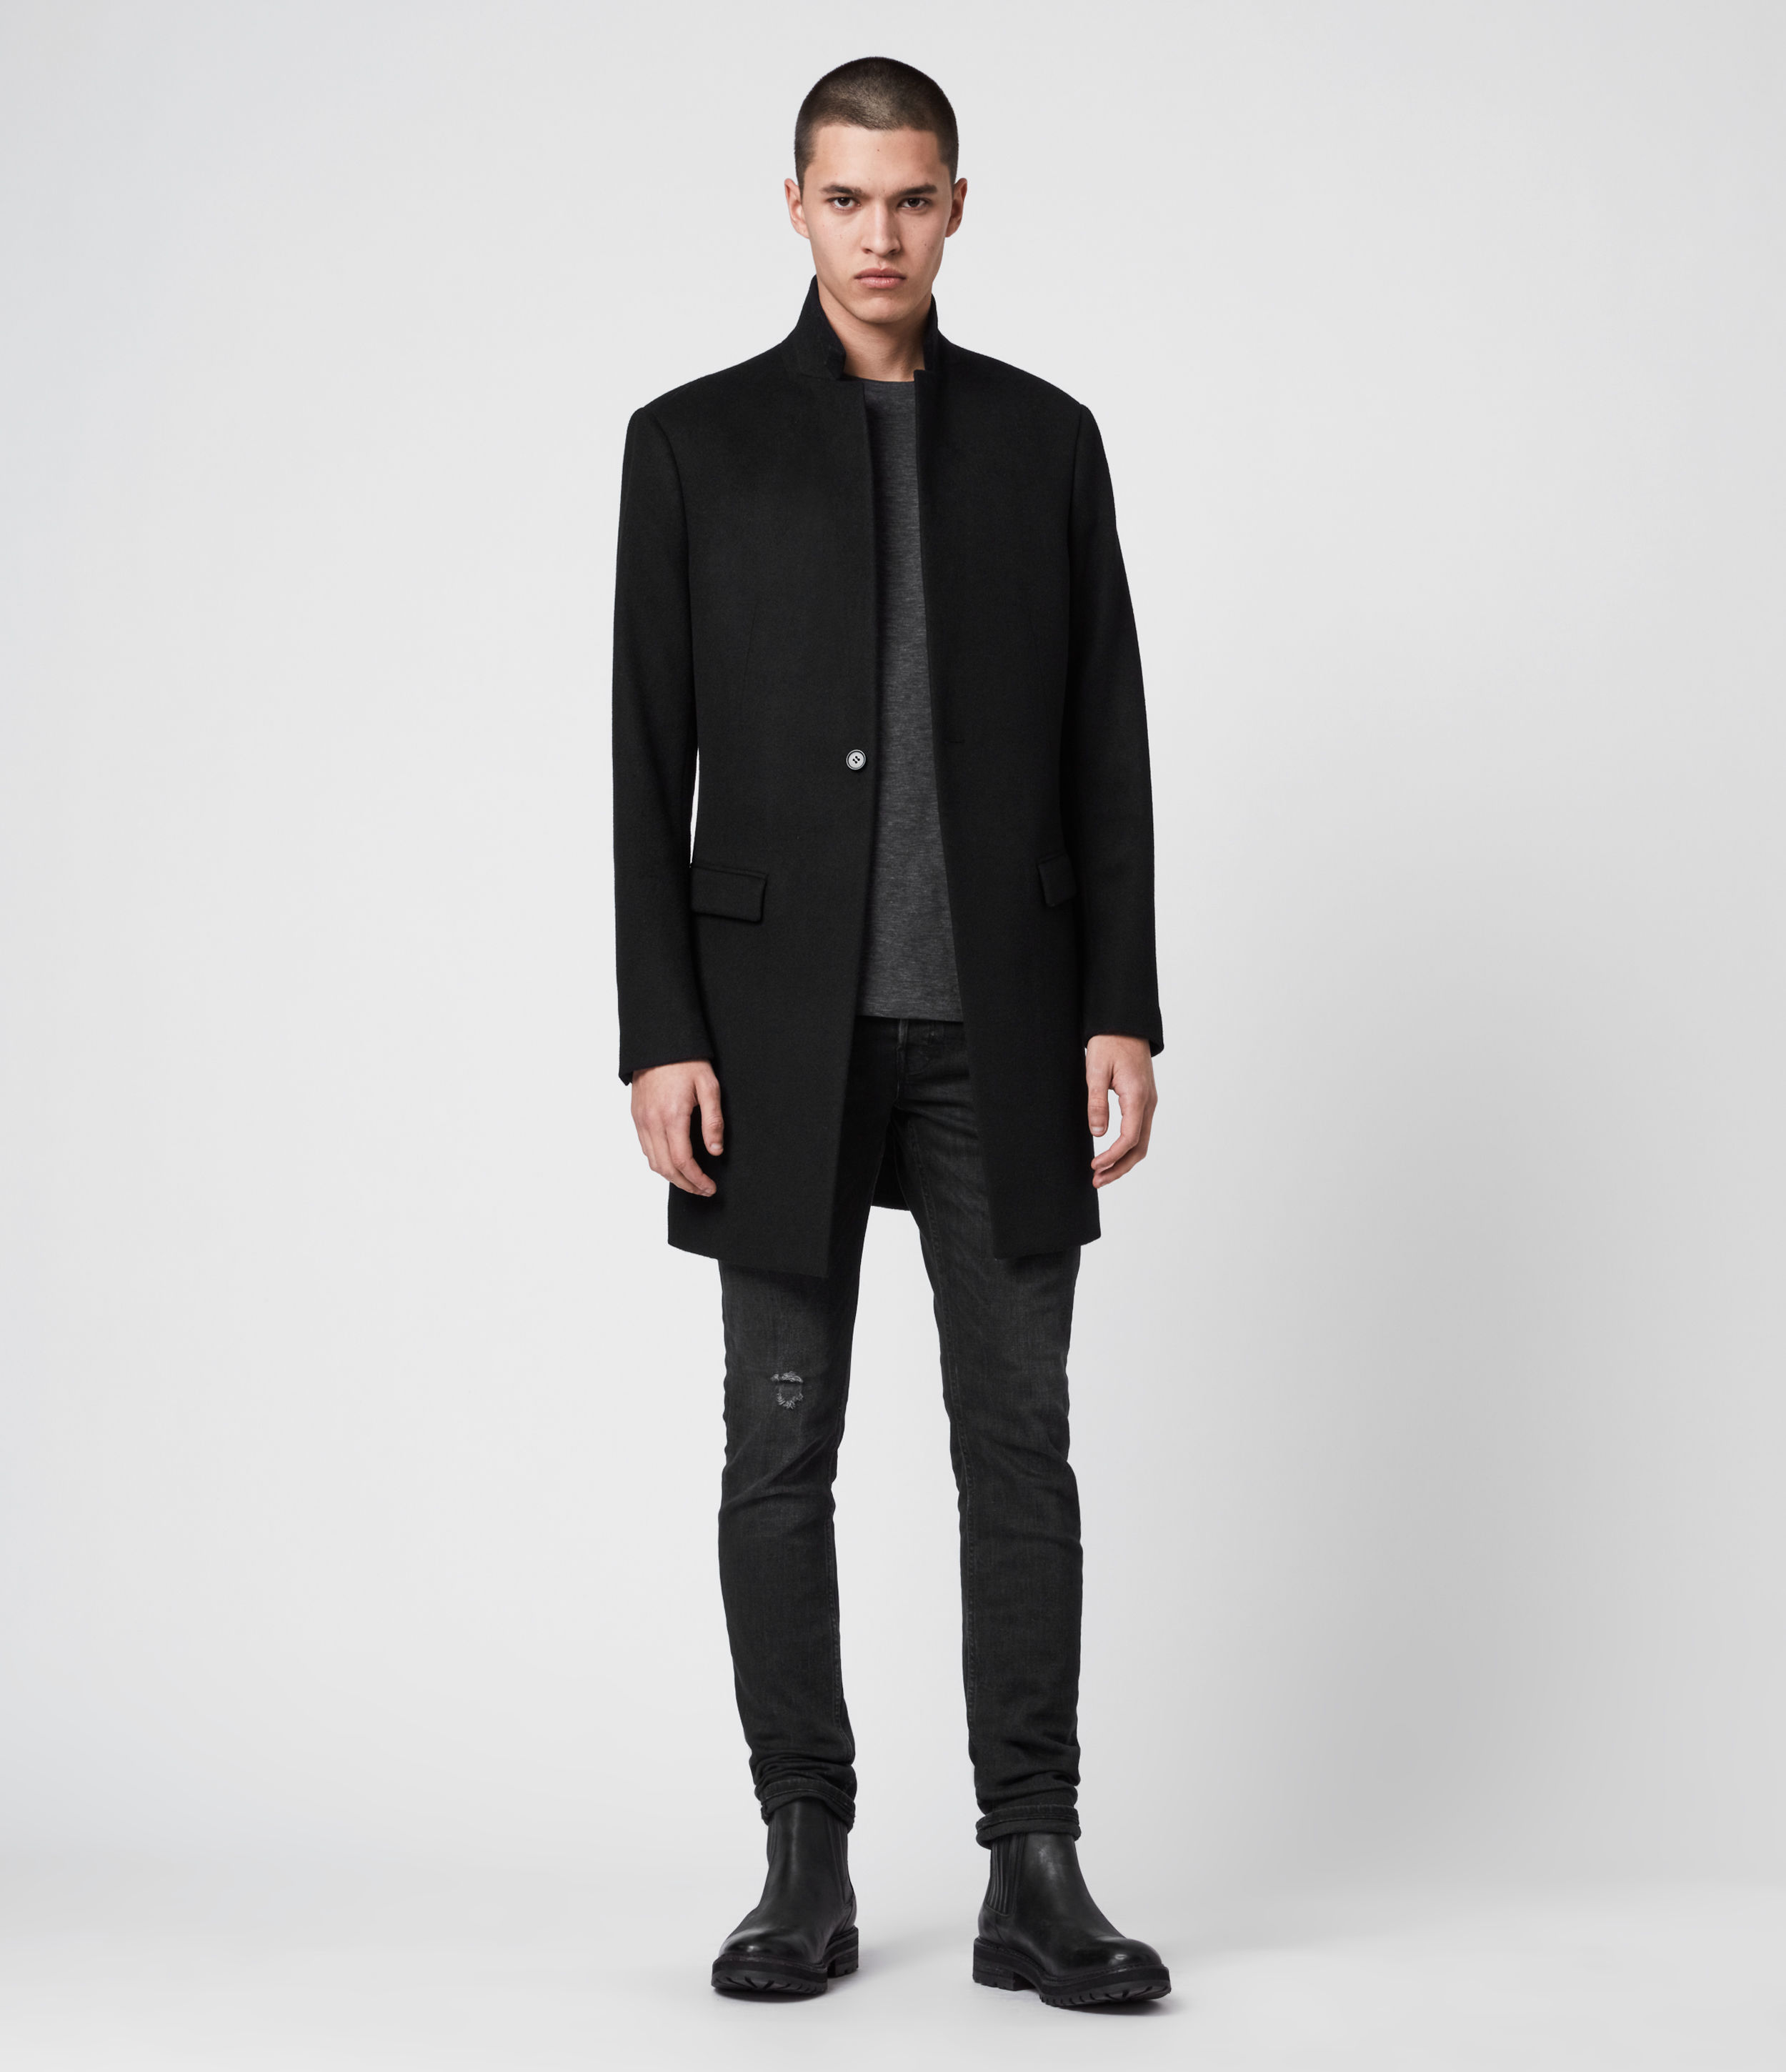 AllSaints Men's Pure Wool Fully Lined Slim Fit Bodell Single Button Coat, Black, Size: 42